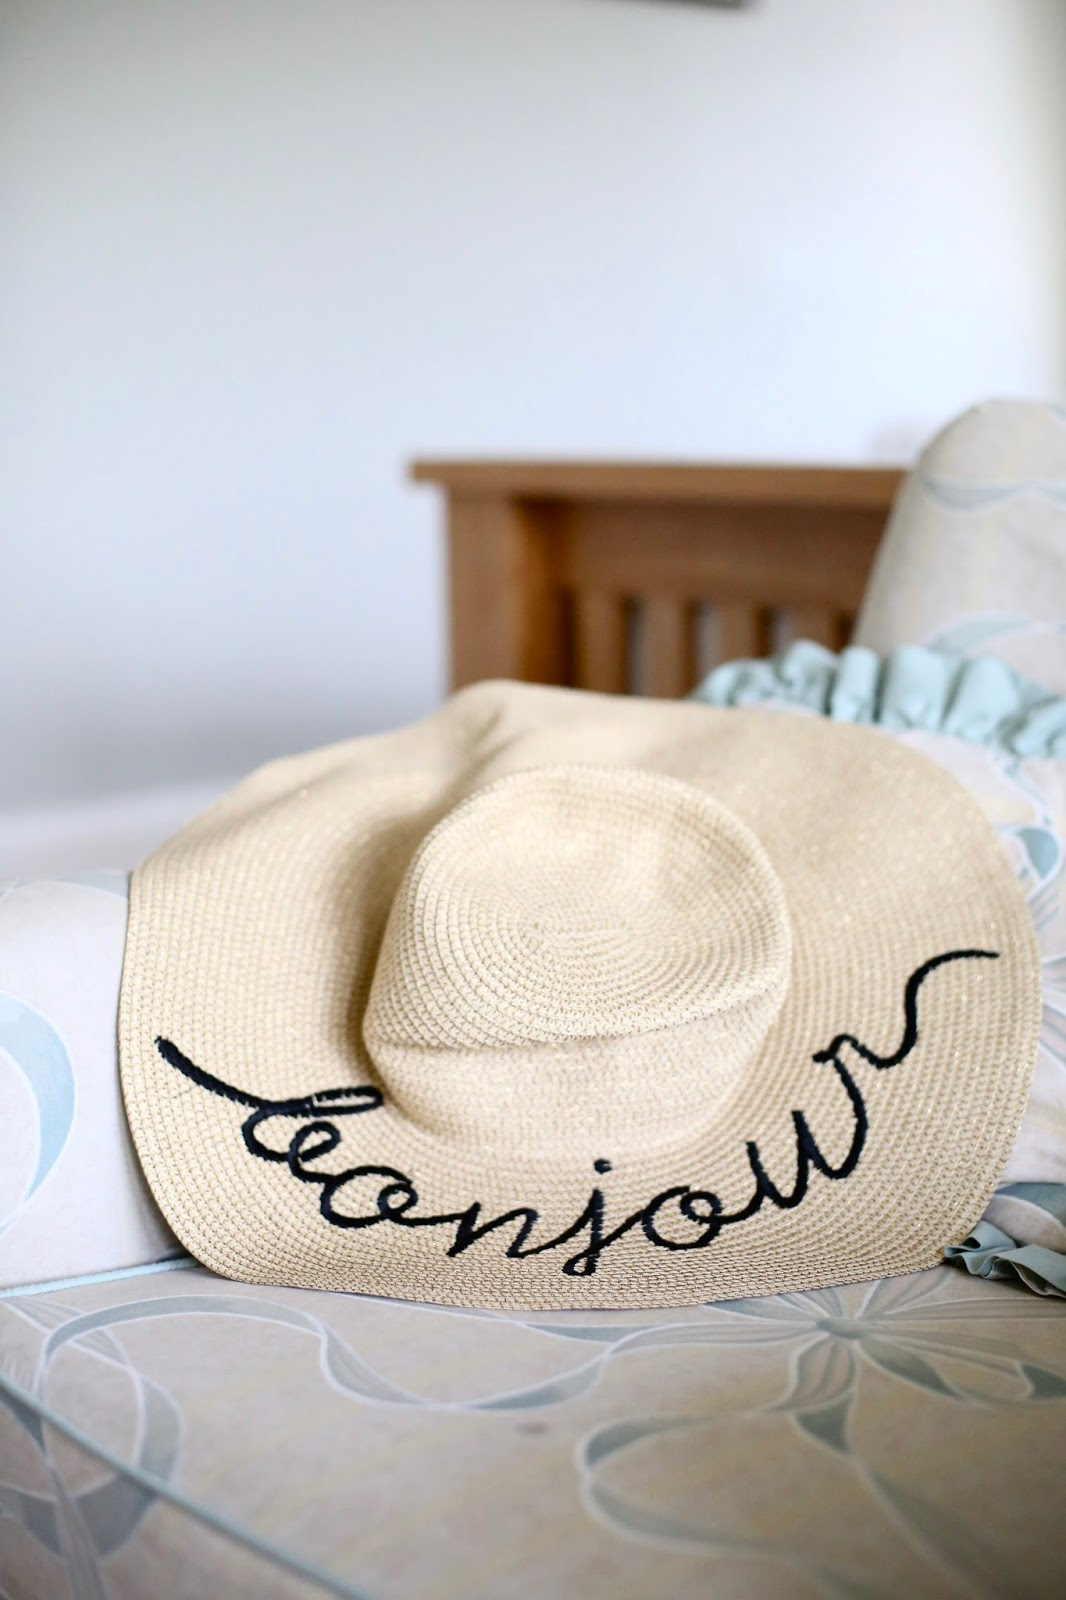 floppy hat with writing on